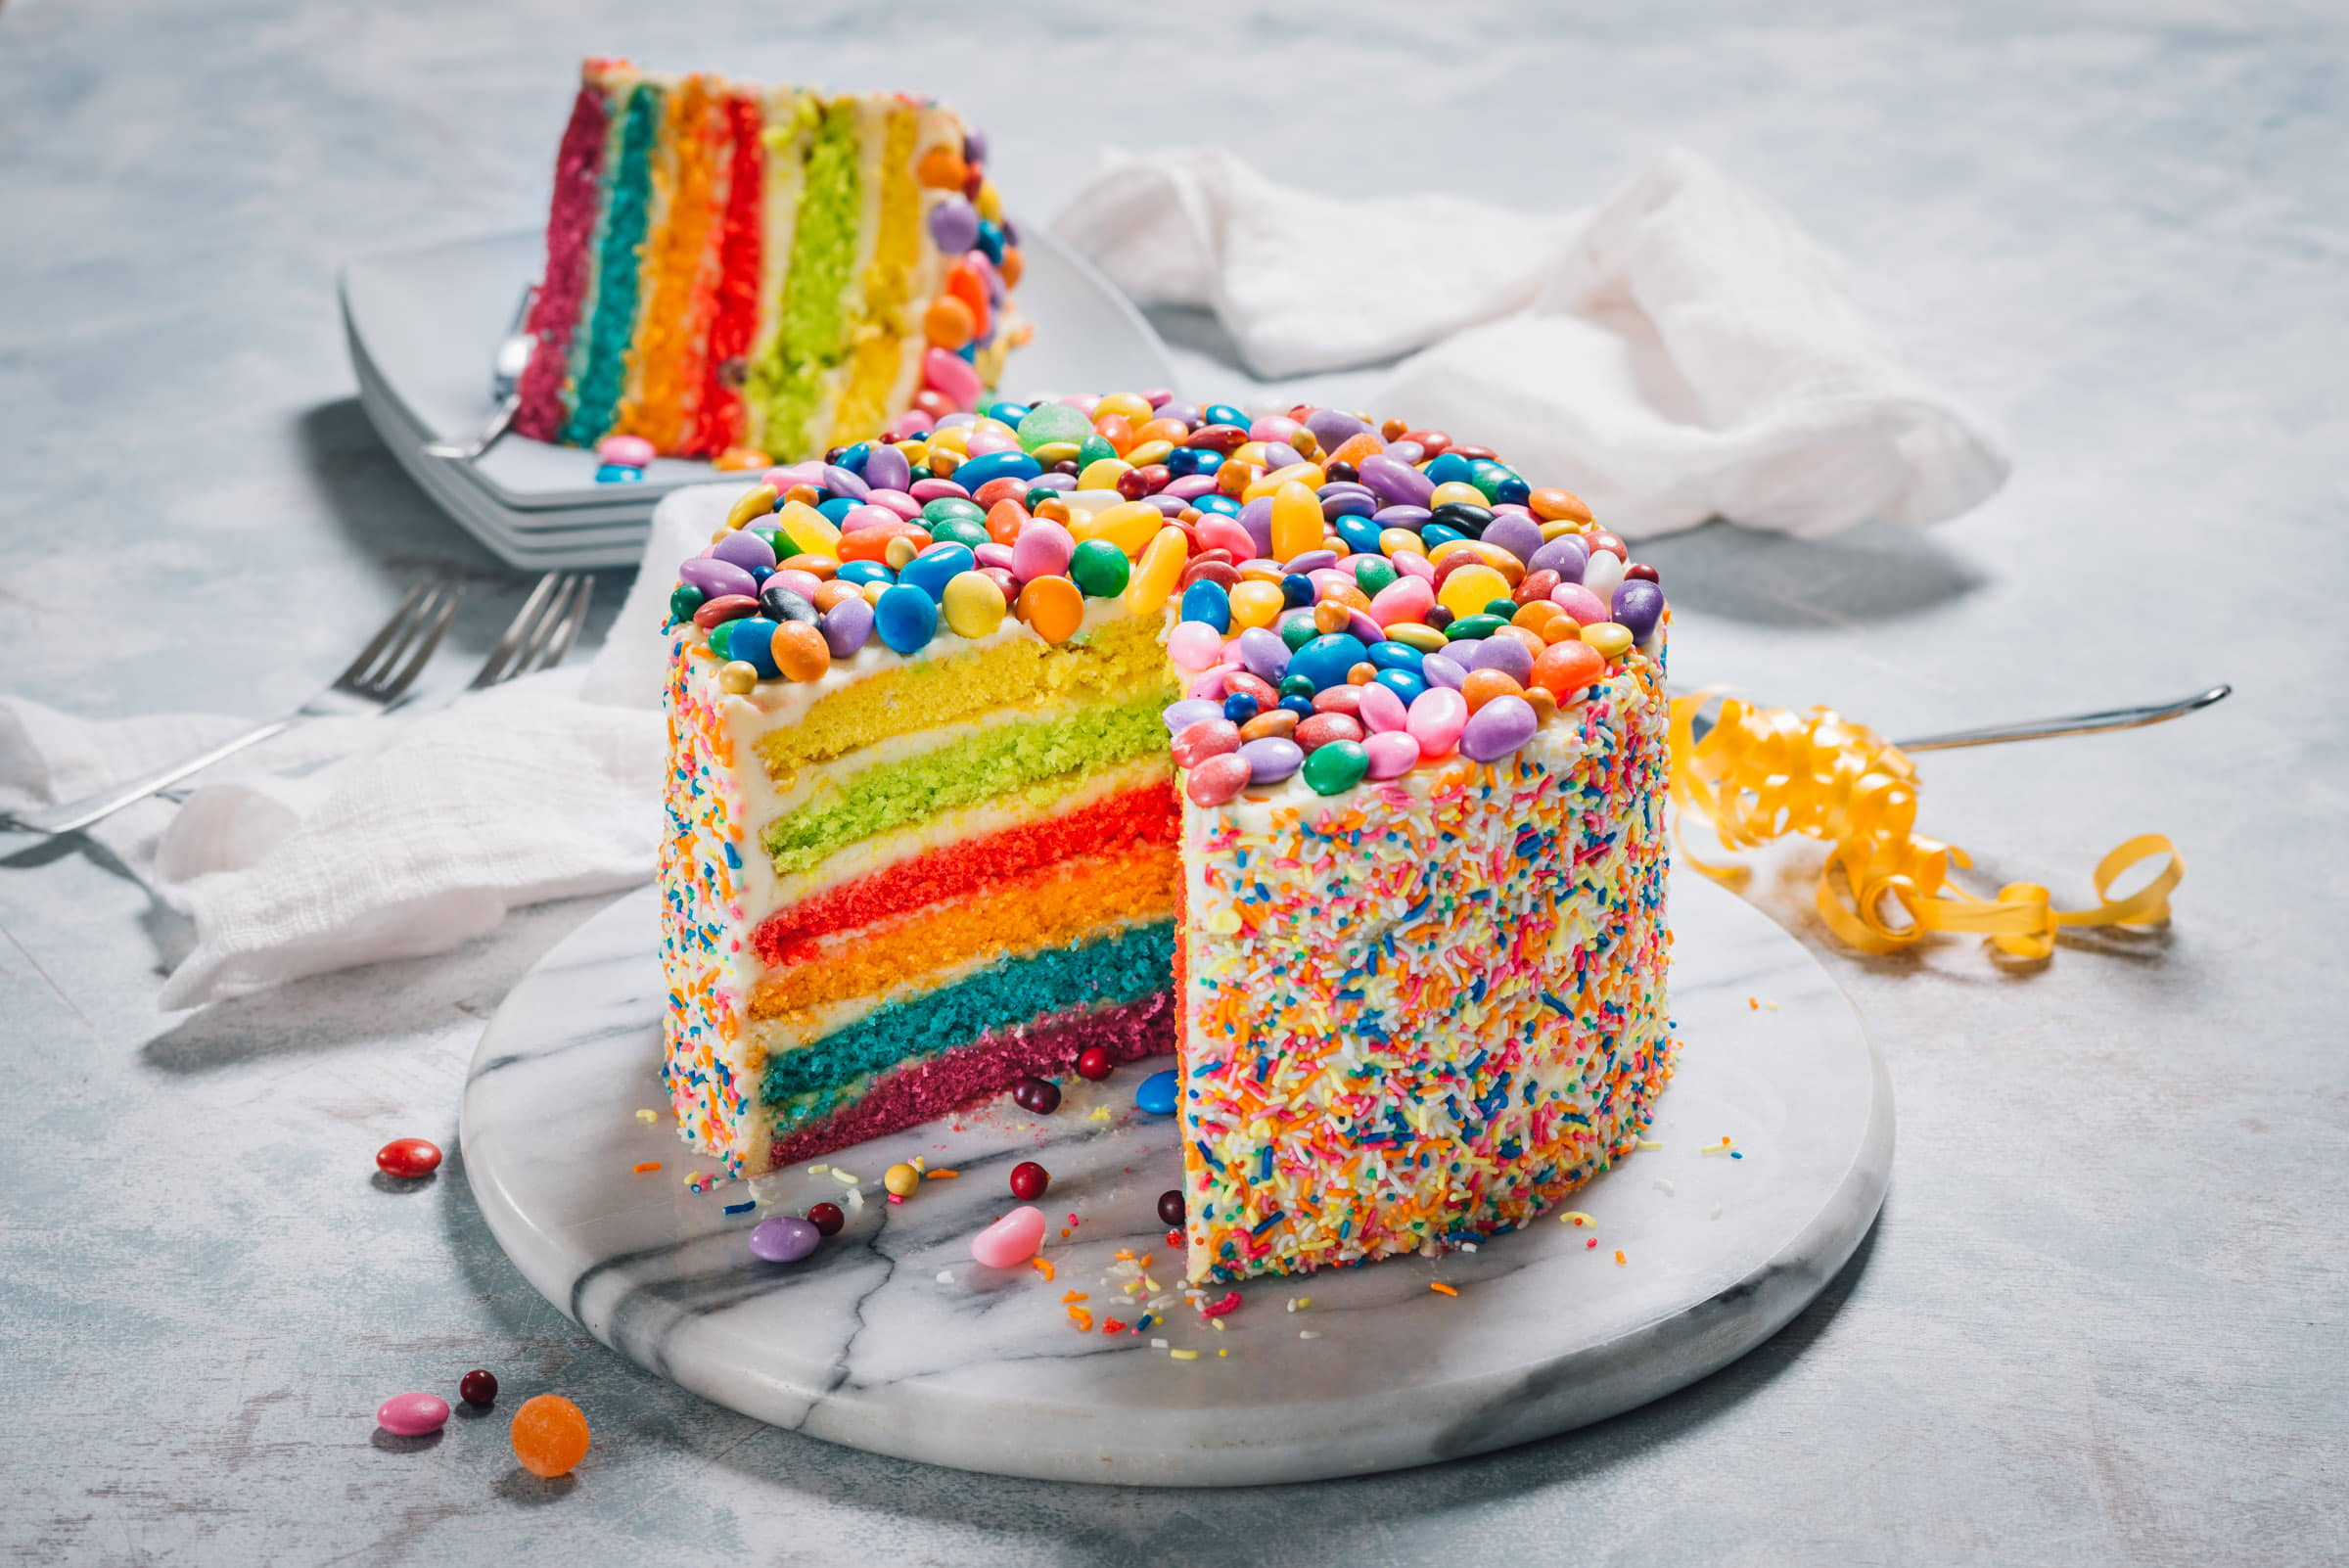 Our most frequently asked question might just be how to order this Rainbow Cake with Buttercream Icing and Candy Toppings!